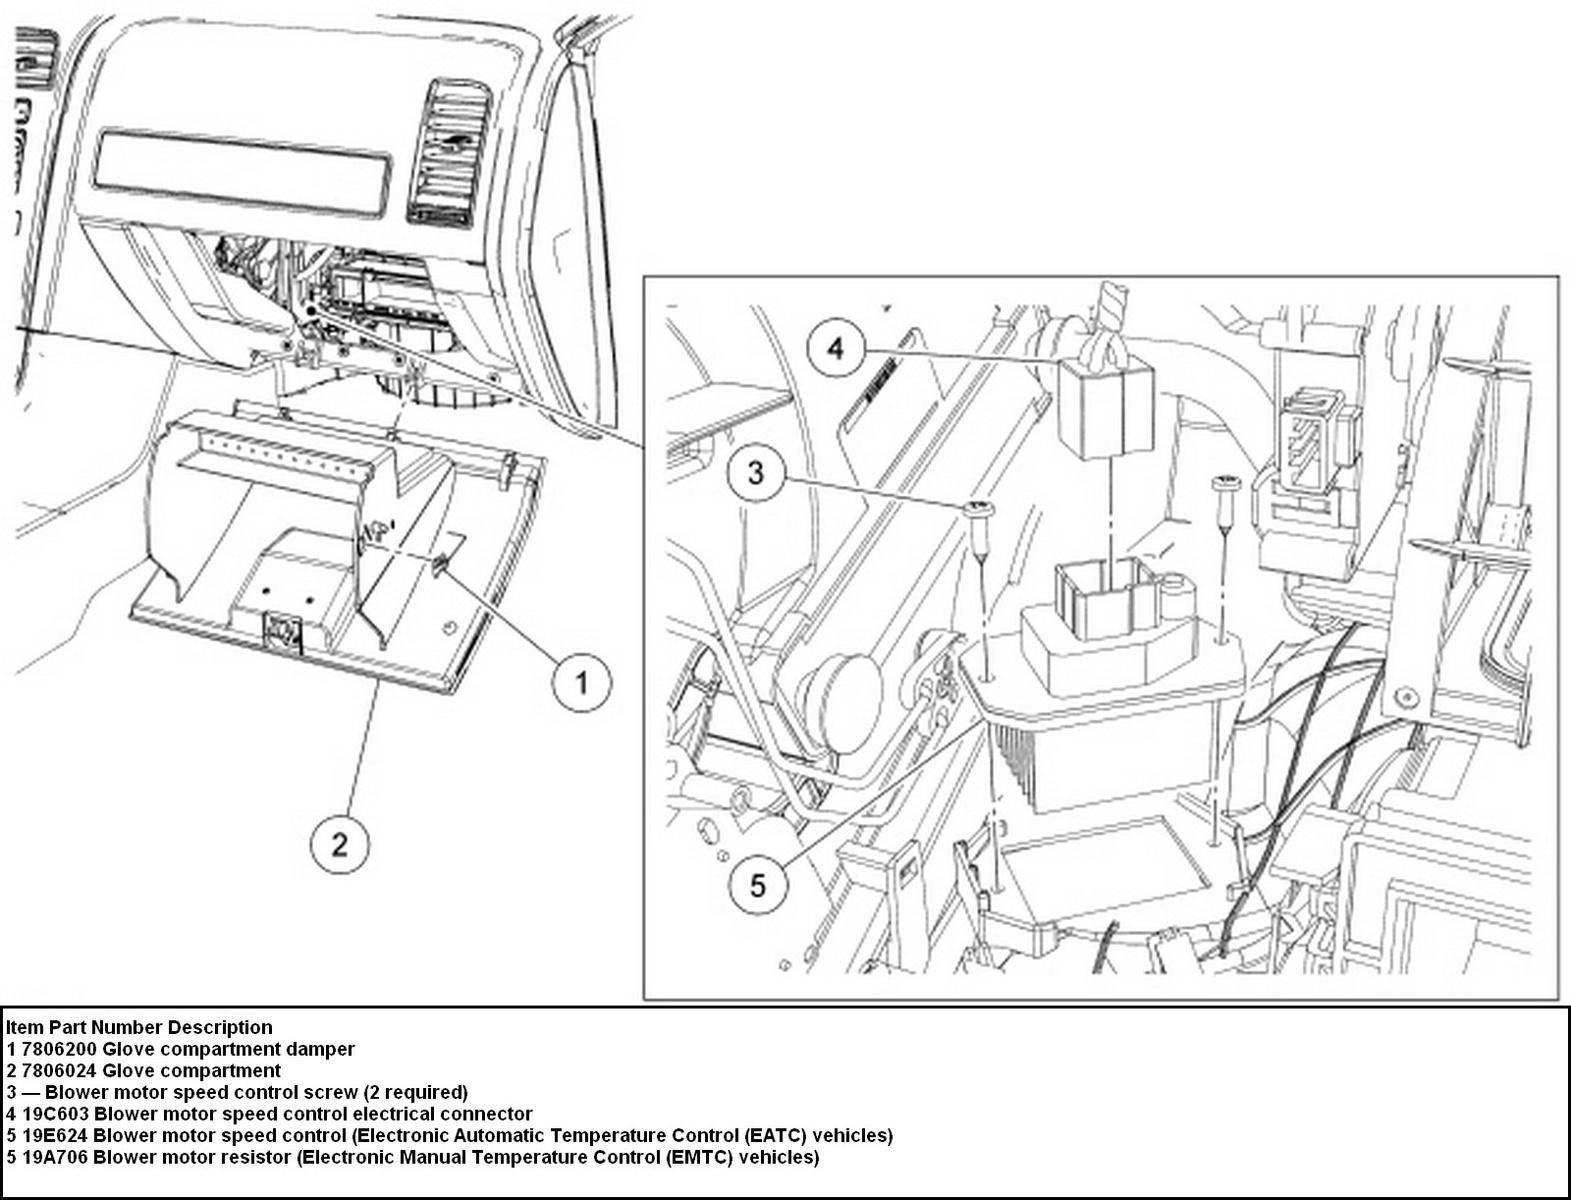 2011 Ford Fusion Blower Motor Resistor Wiring Diagram